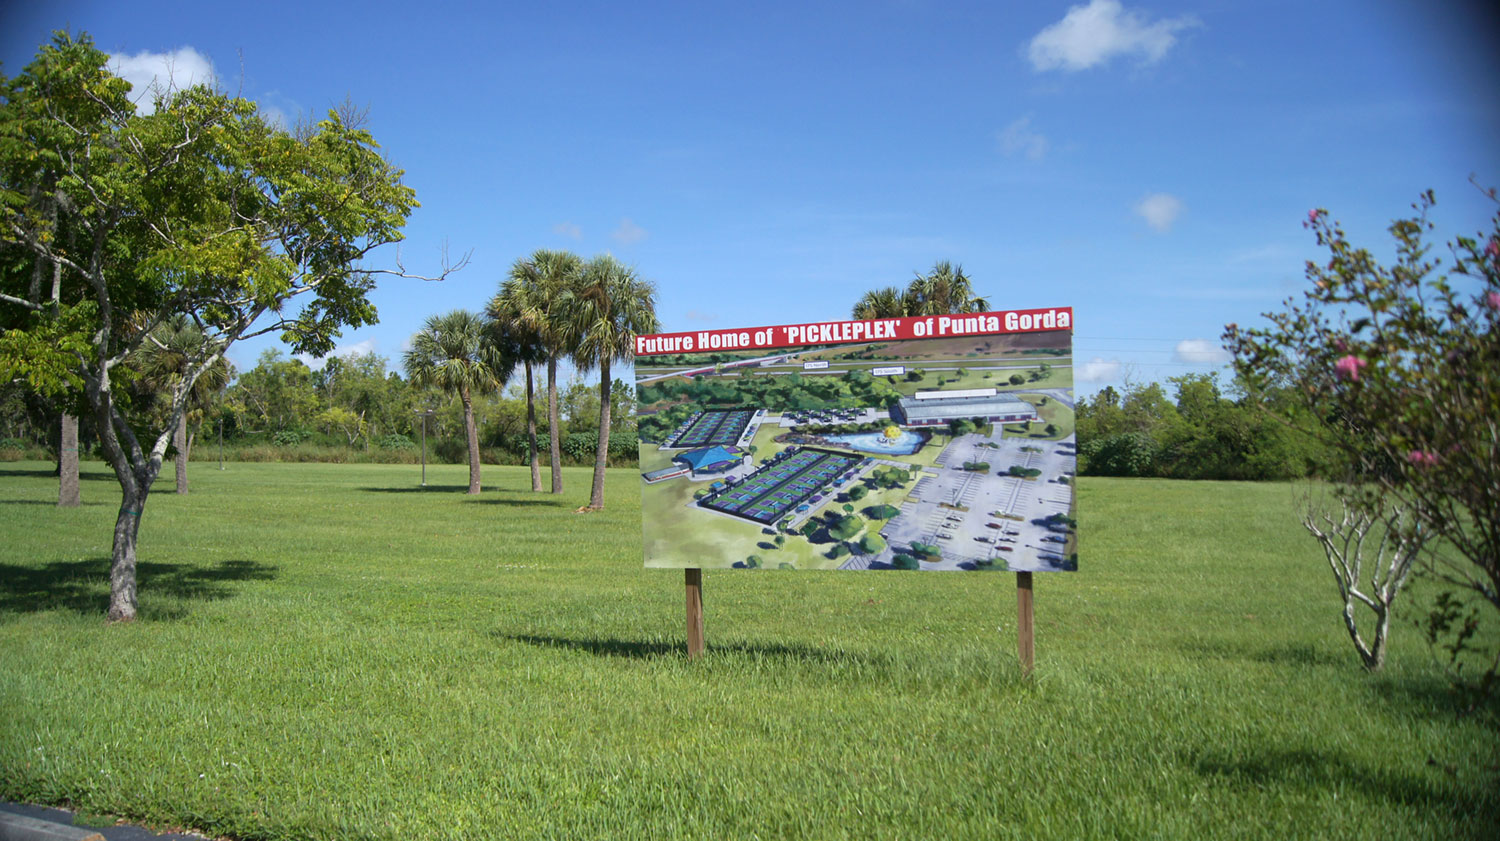 Future Home of Pickleplex of Punta Gorda Image